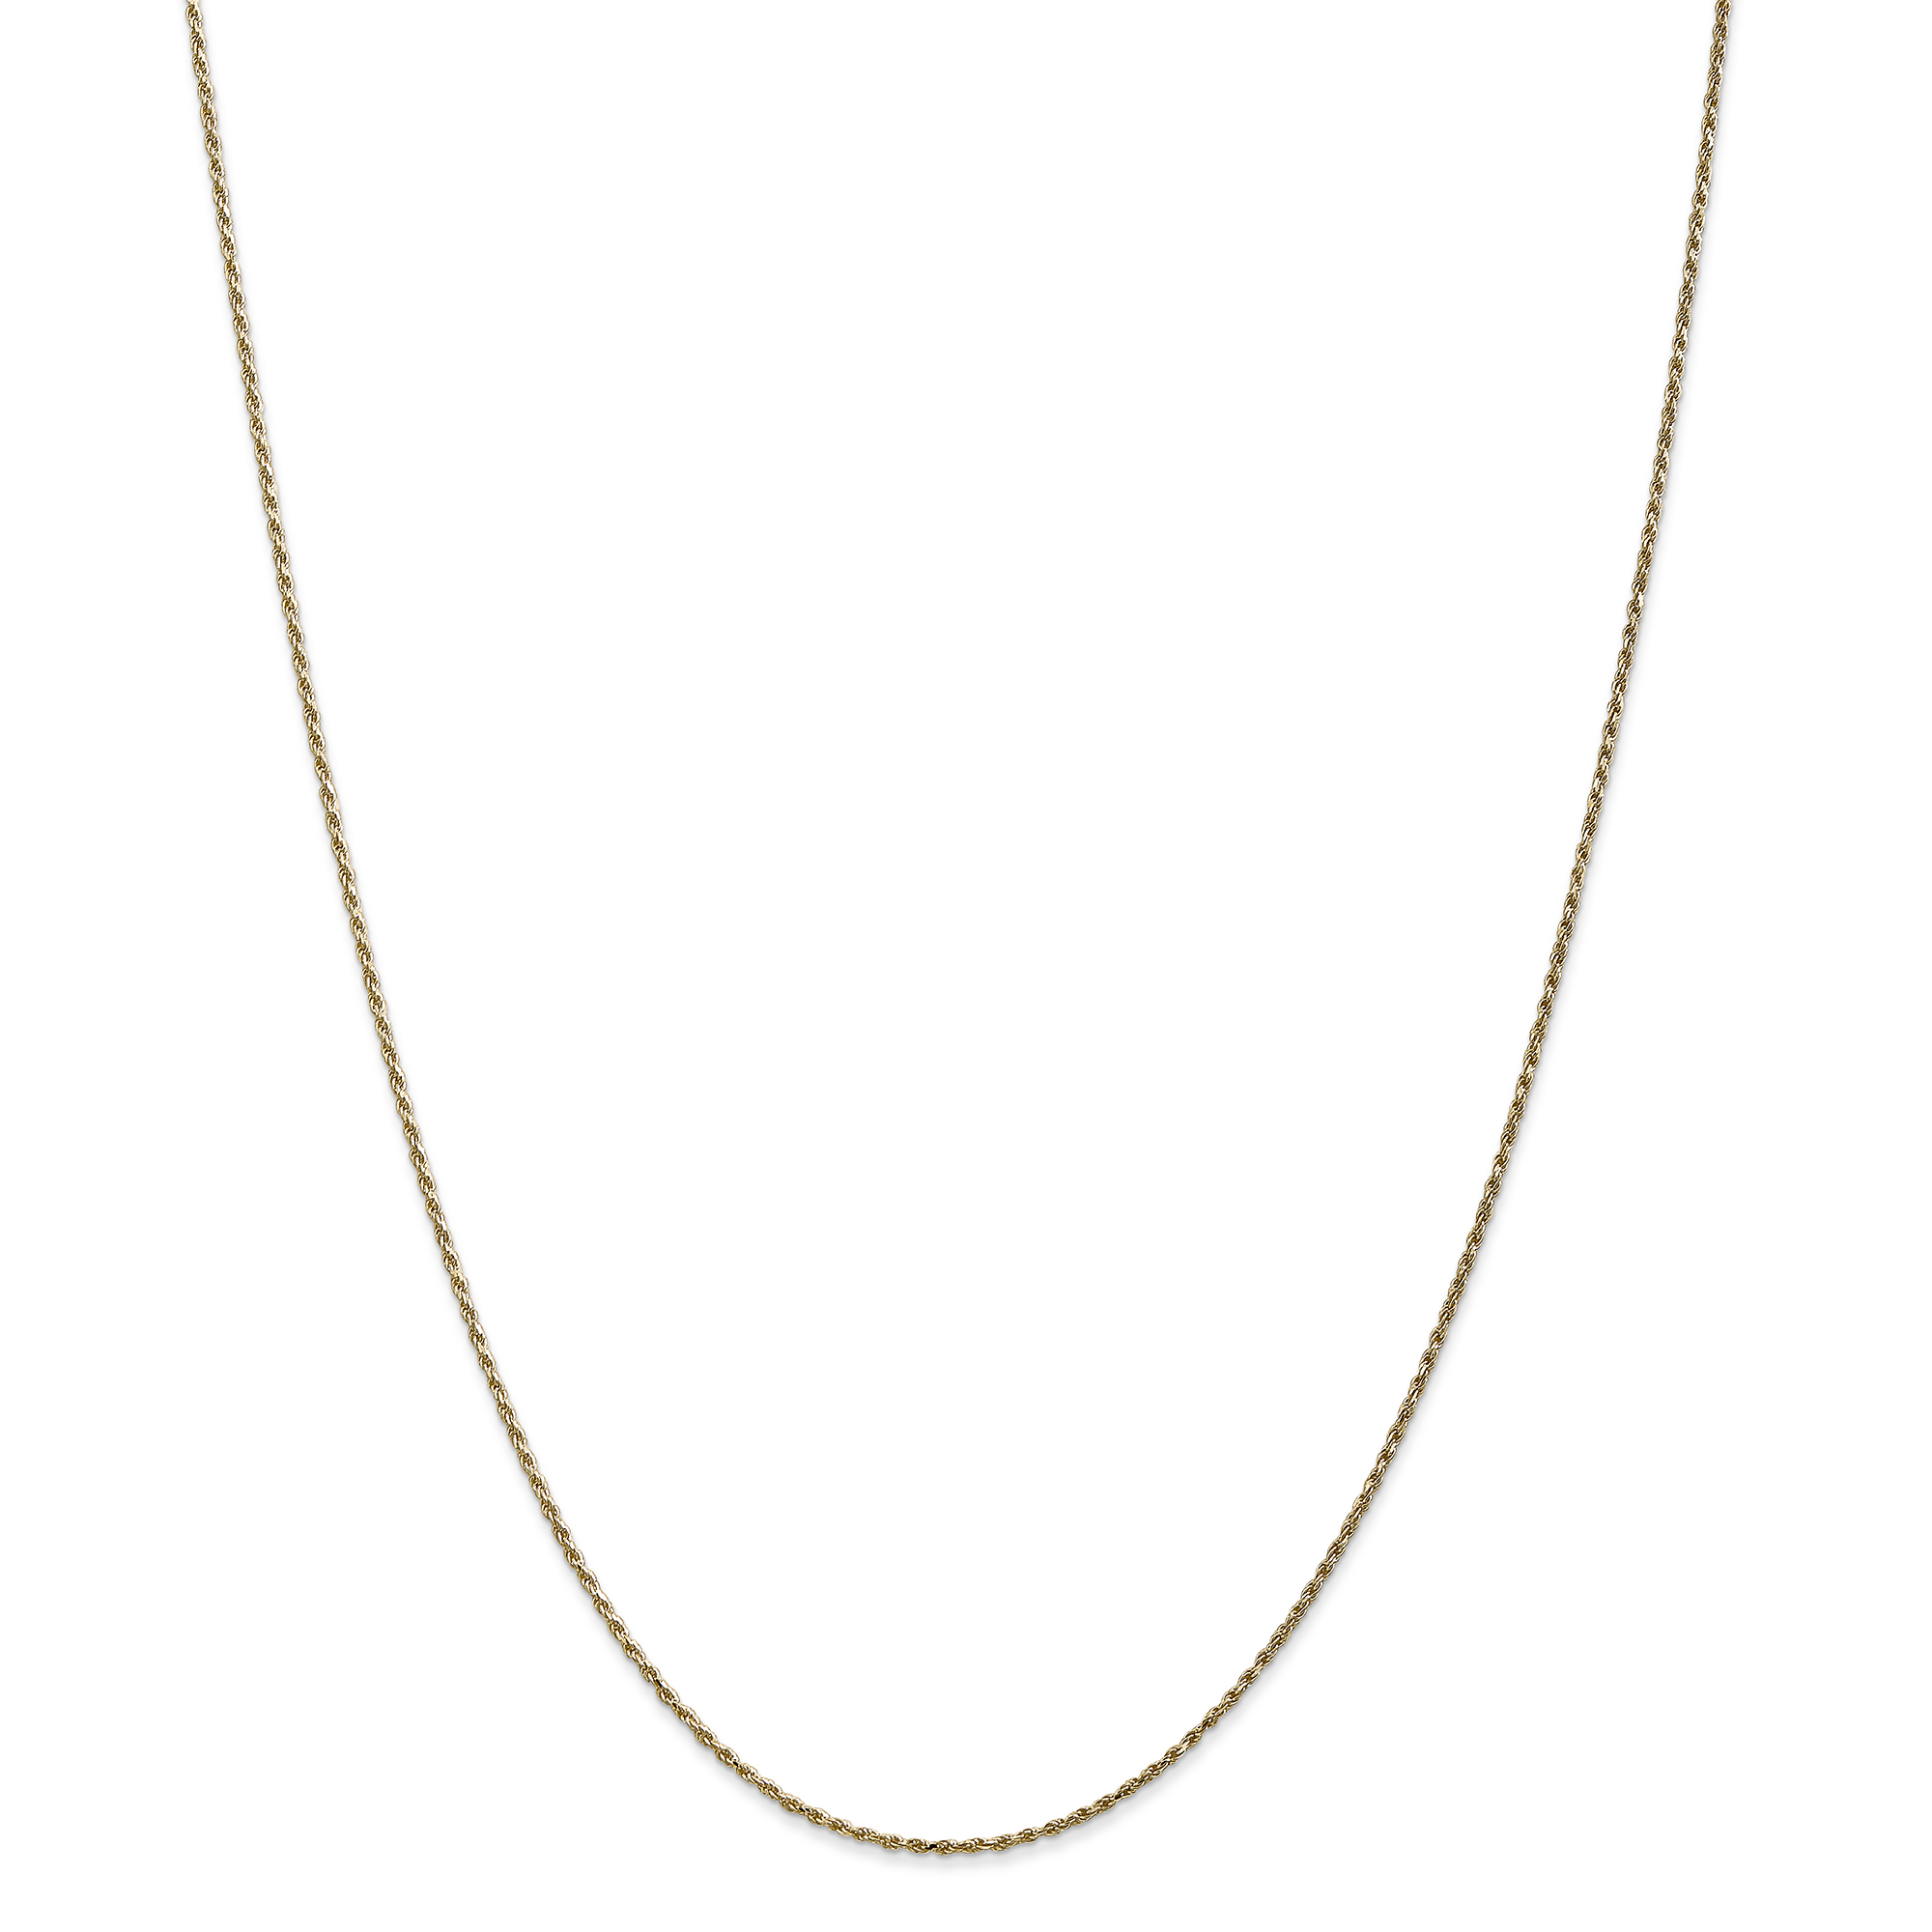 14 kt Yellow Gold 14k 1.15mm Machine-made Rope Chain Anklet 10 in Length